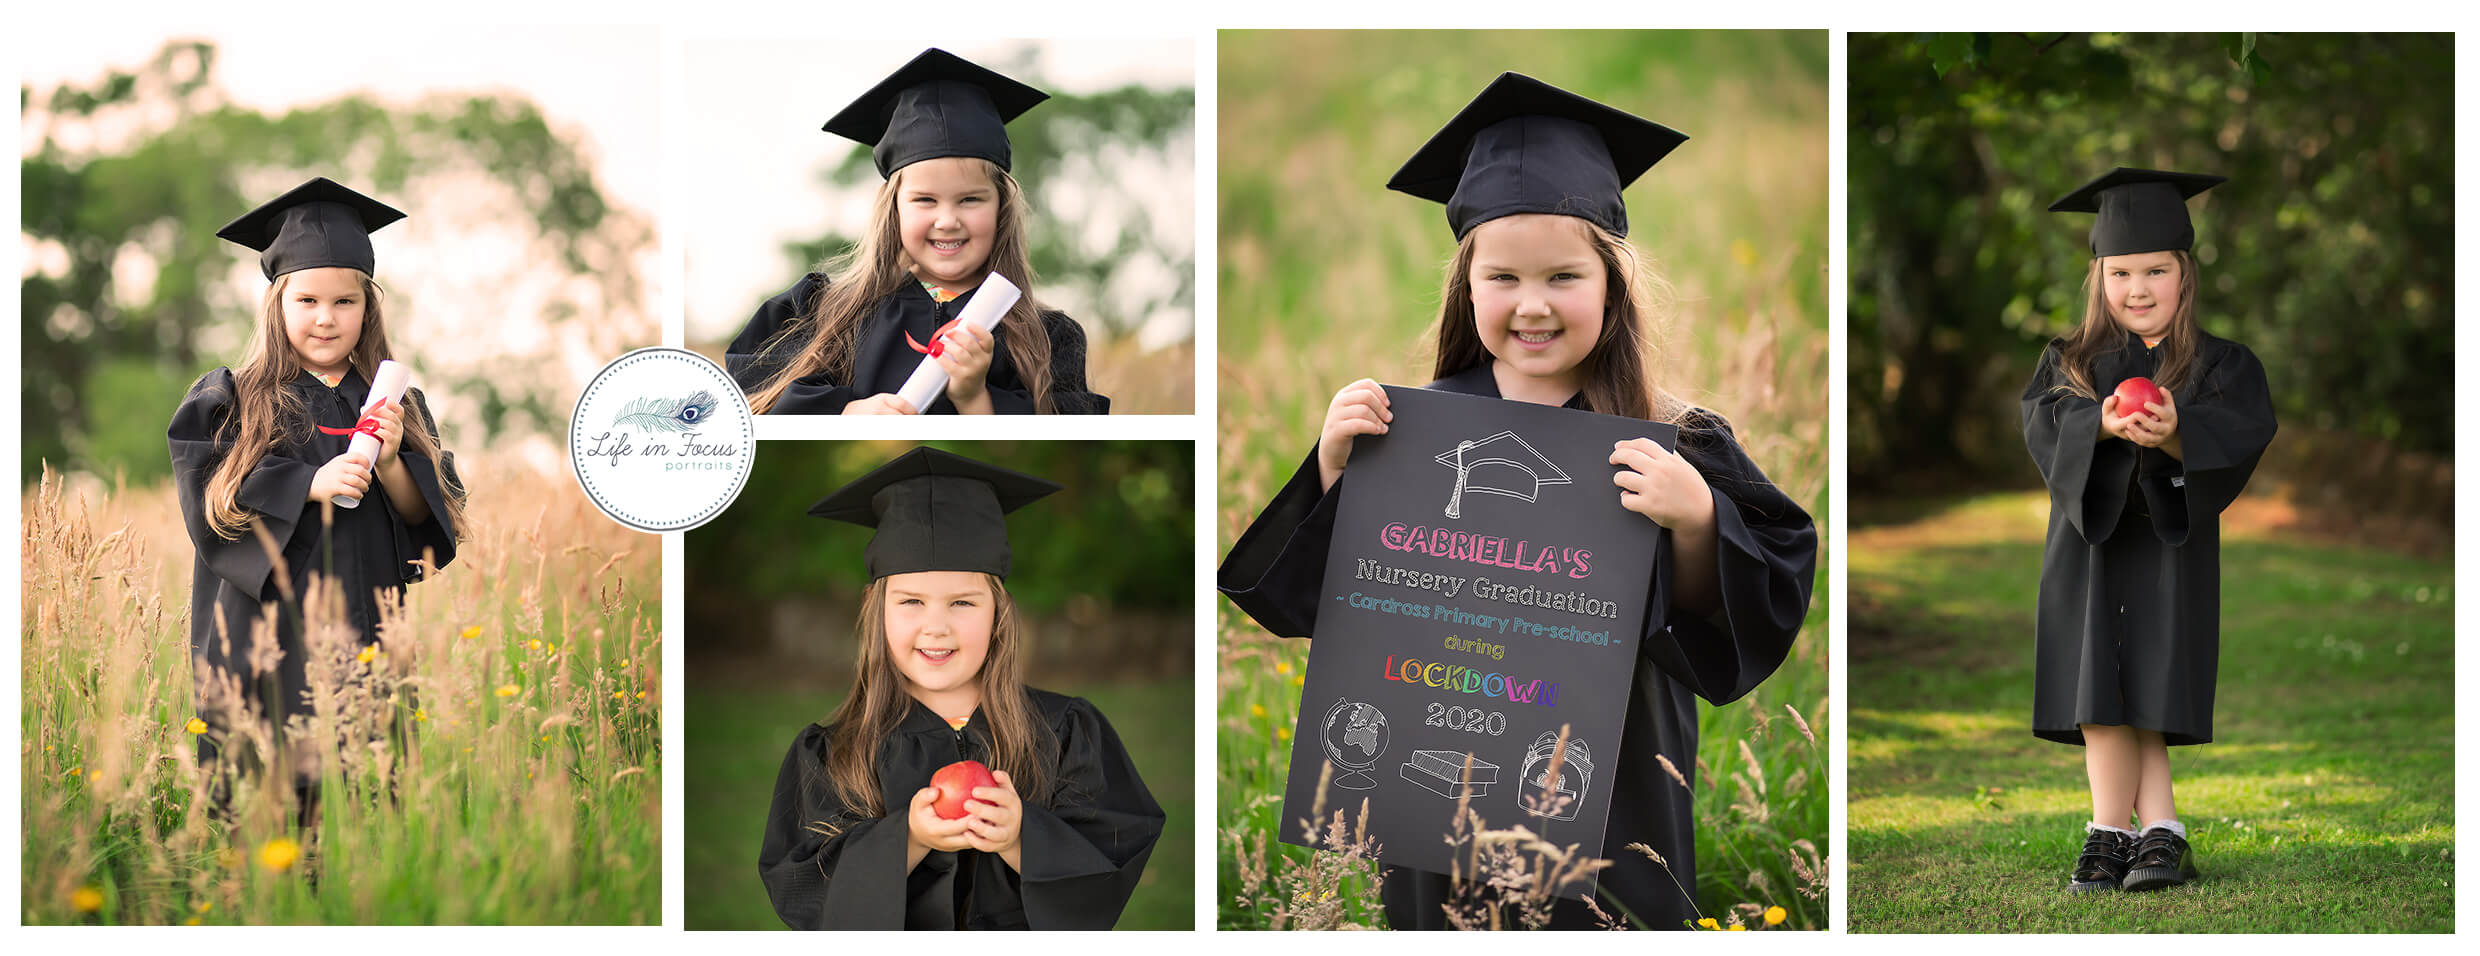 Nursery Graduation photos Cardross Helensburgh Rhu Life in Focus Portraits childrens photographer